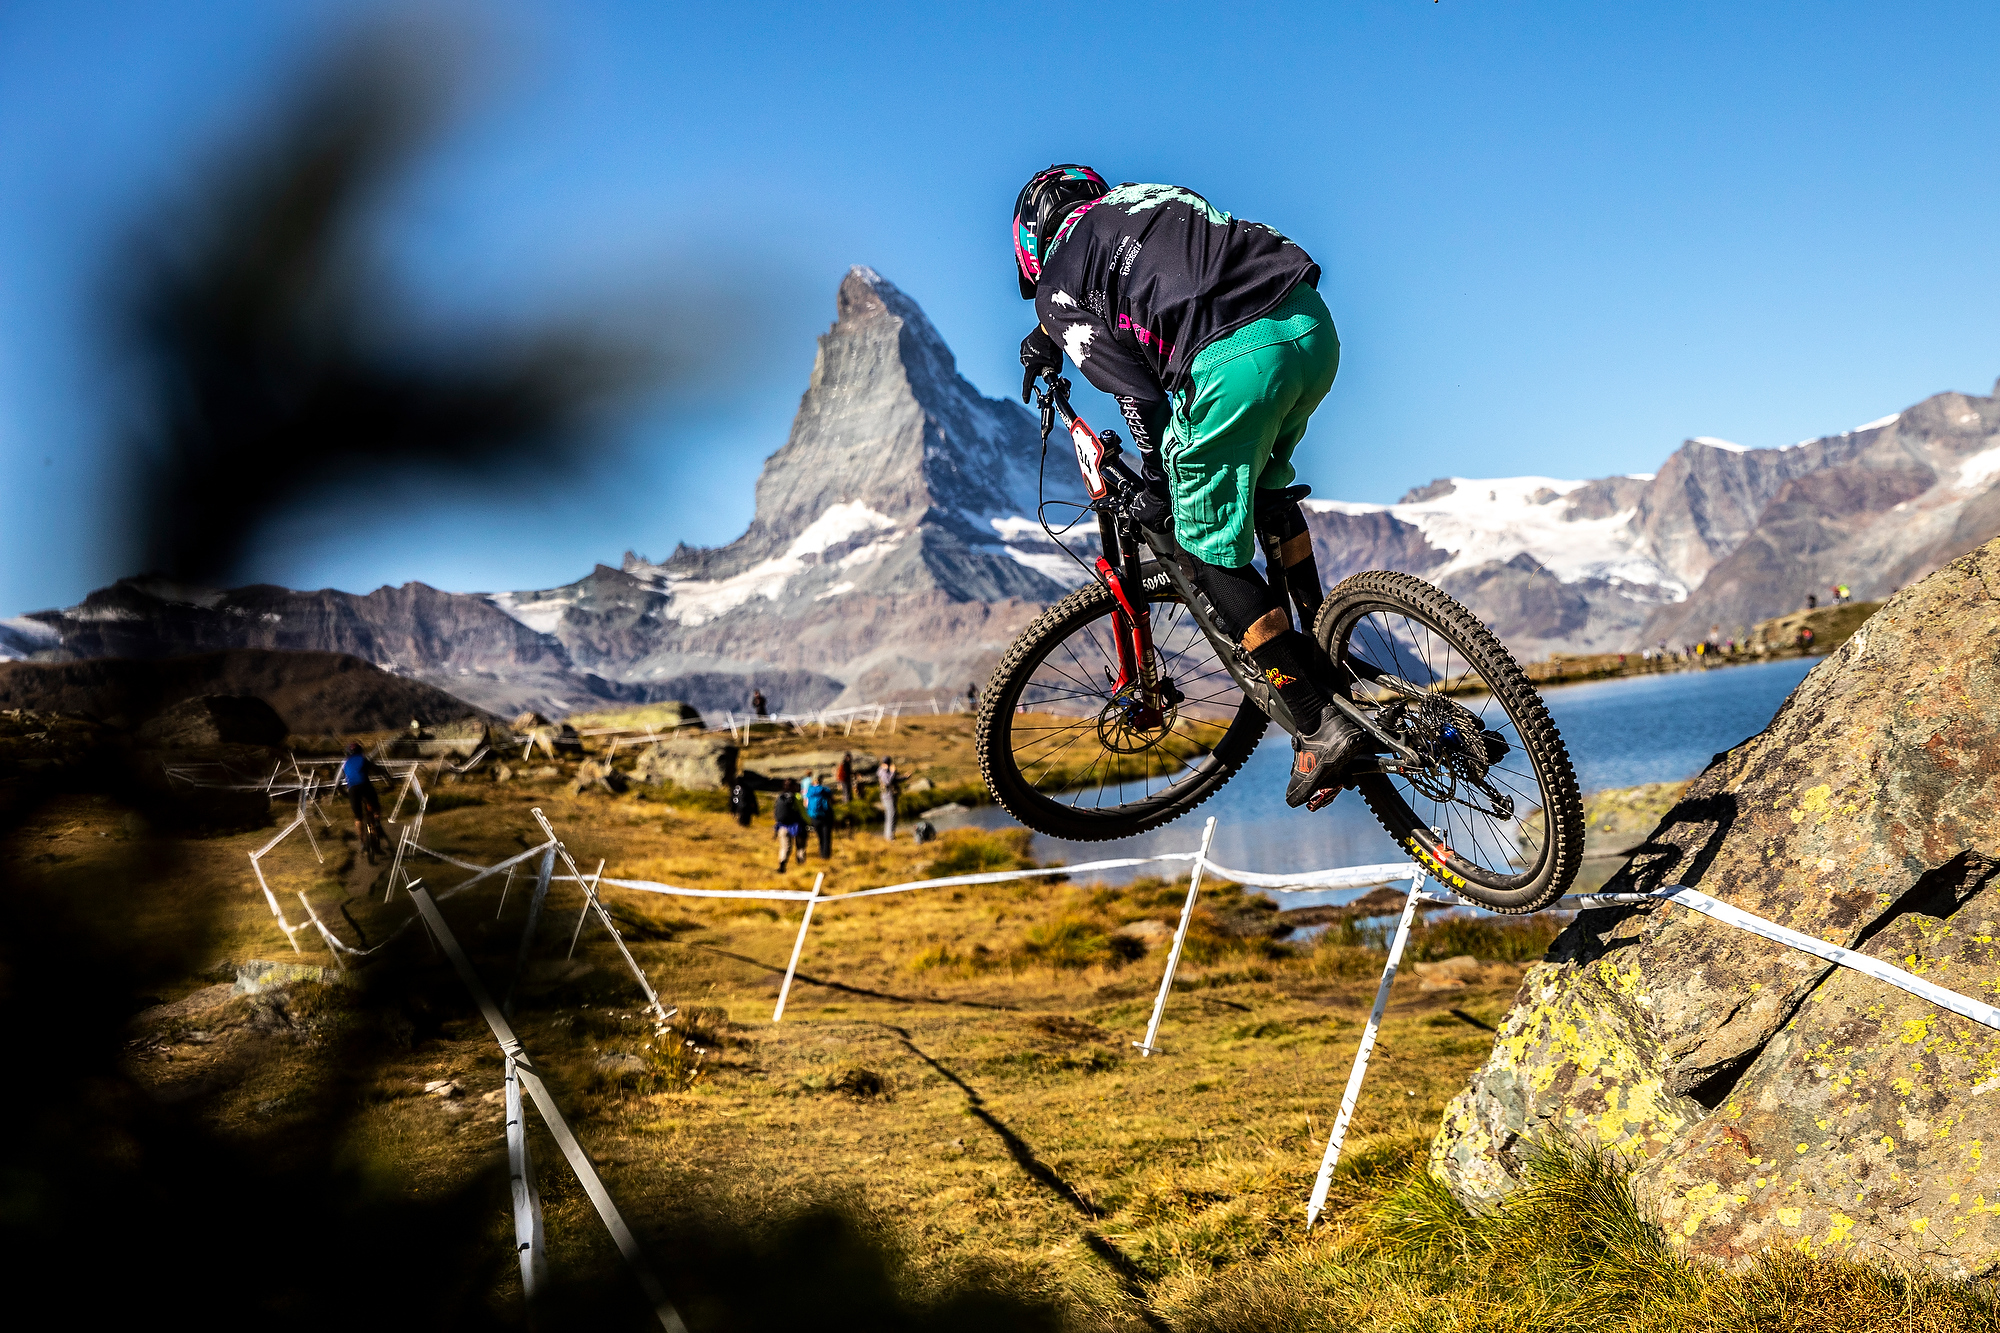 The Mind Behind the Lens: An Interview With Legendary MTB Photographer Sven Martin - Singletracks Mountain Bike News